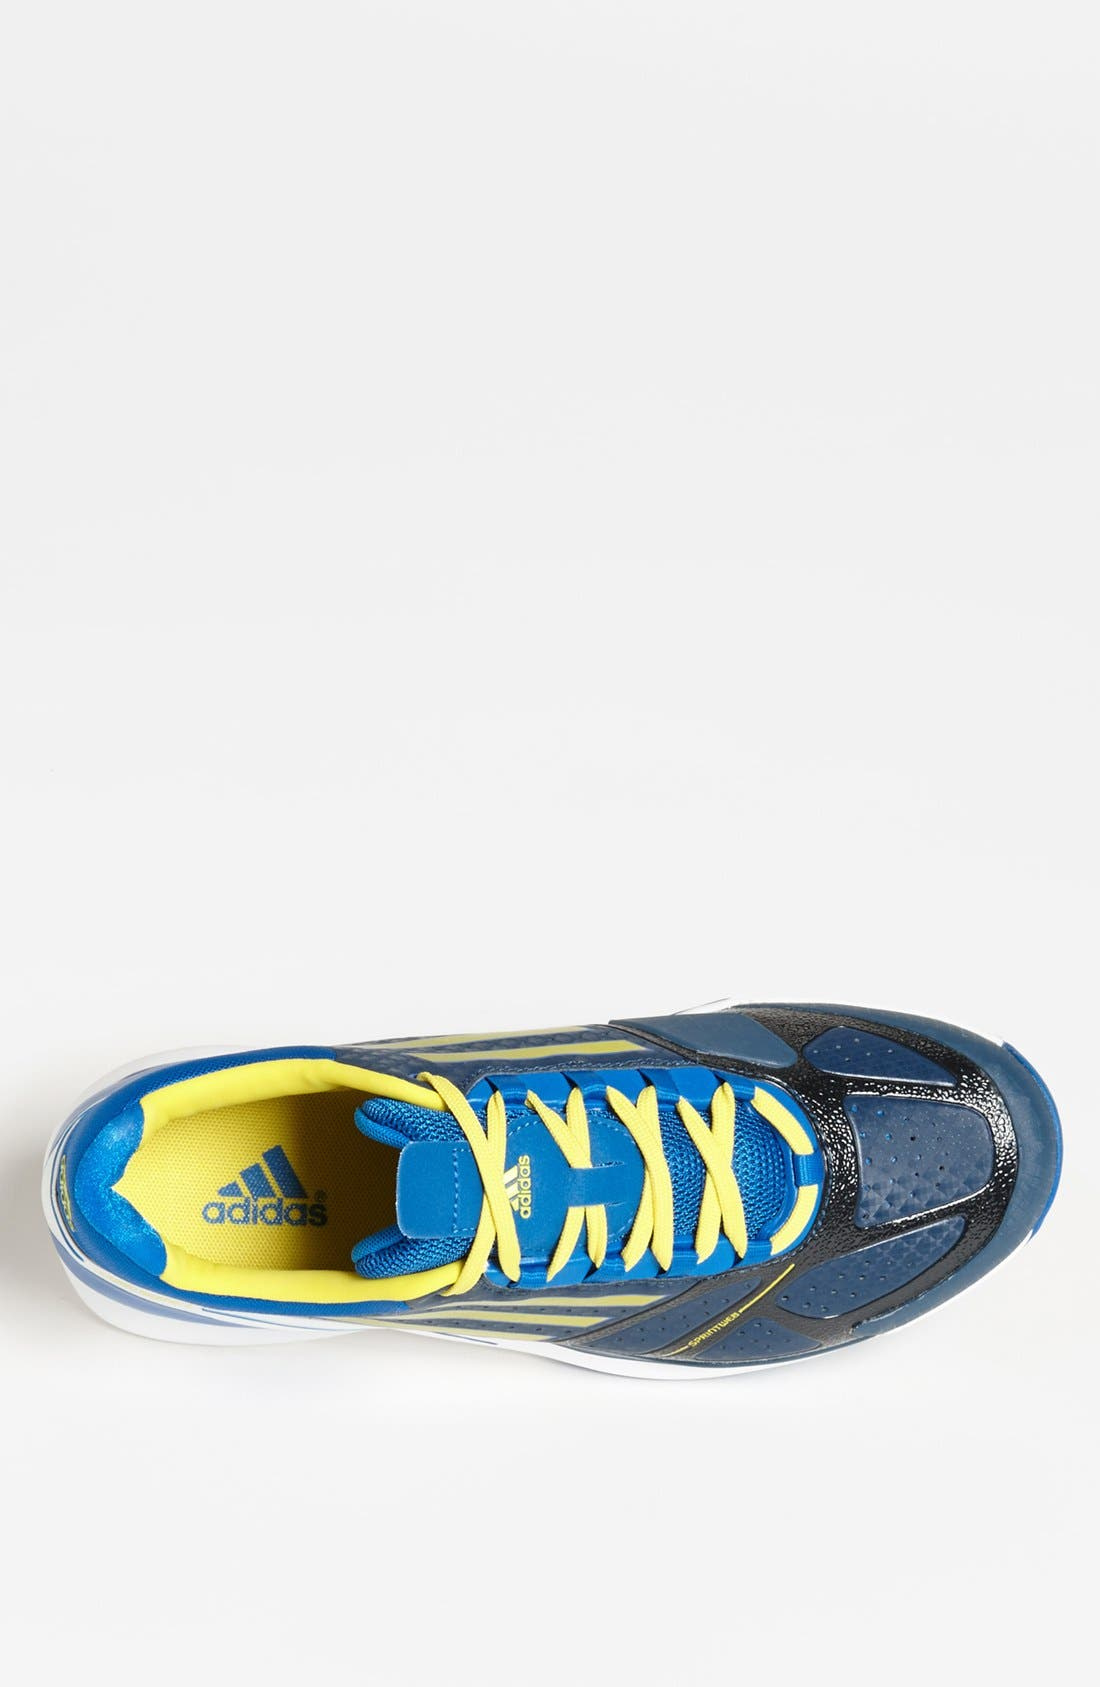 Alternate Image 3  - adidas 'adizero Feather II' Tennis Shoe (Men)